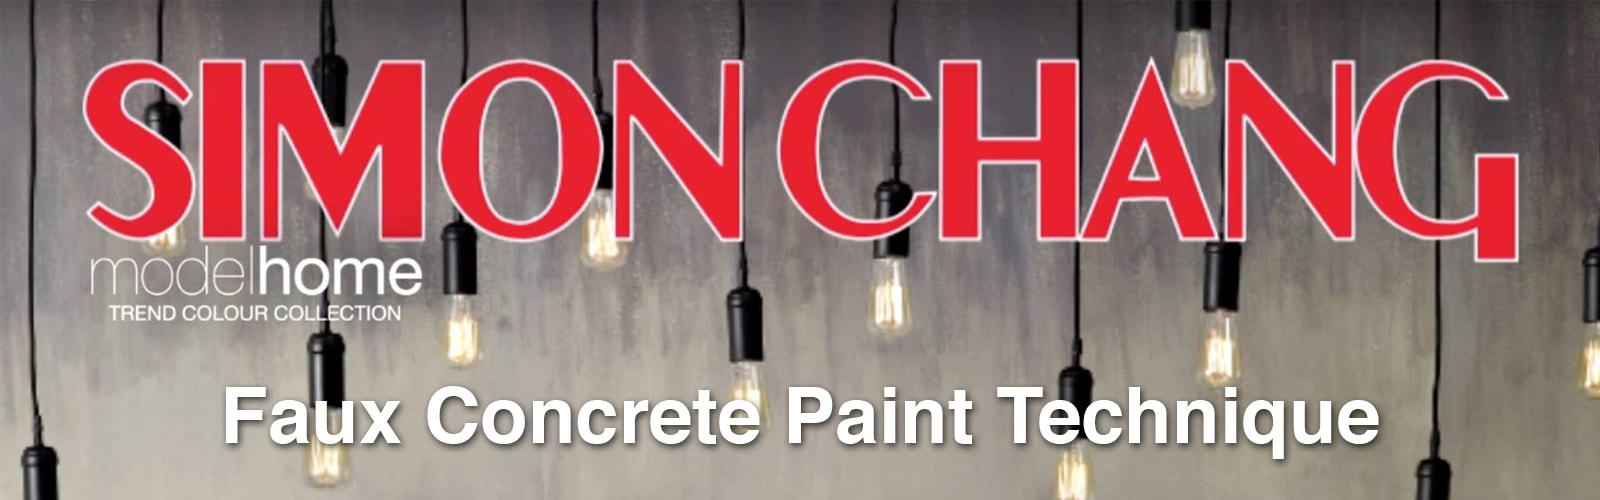 DIY Faux Concrete Paint Technique